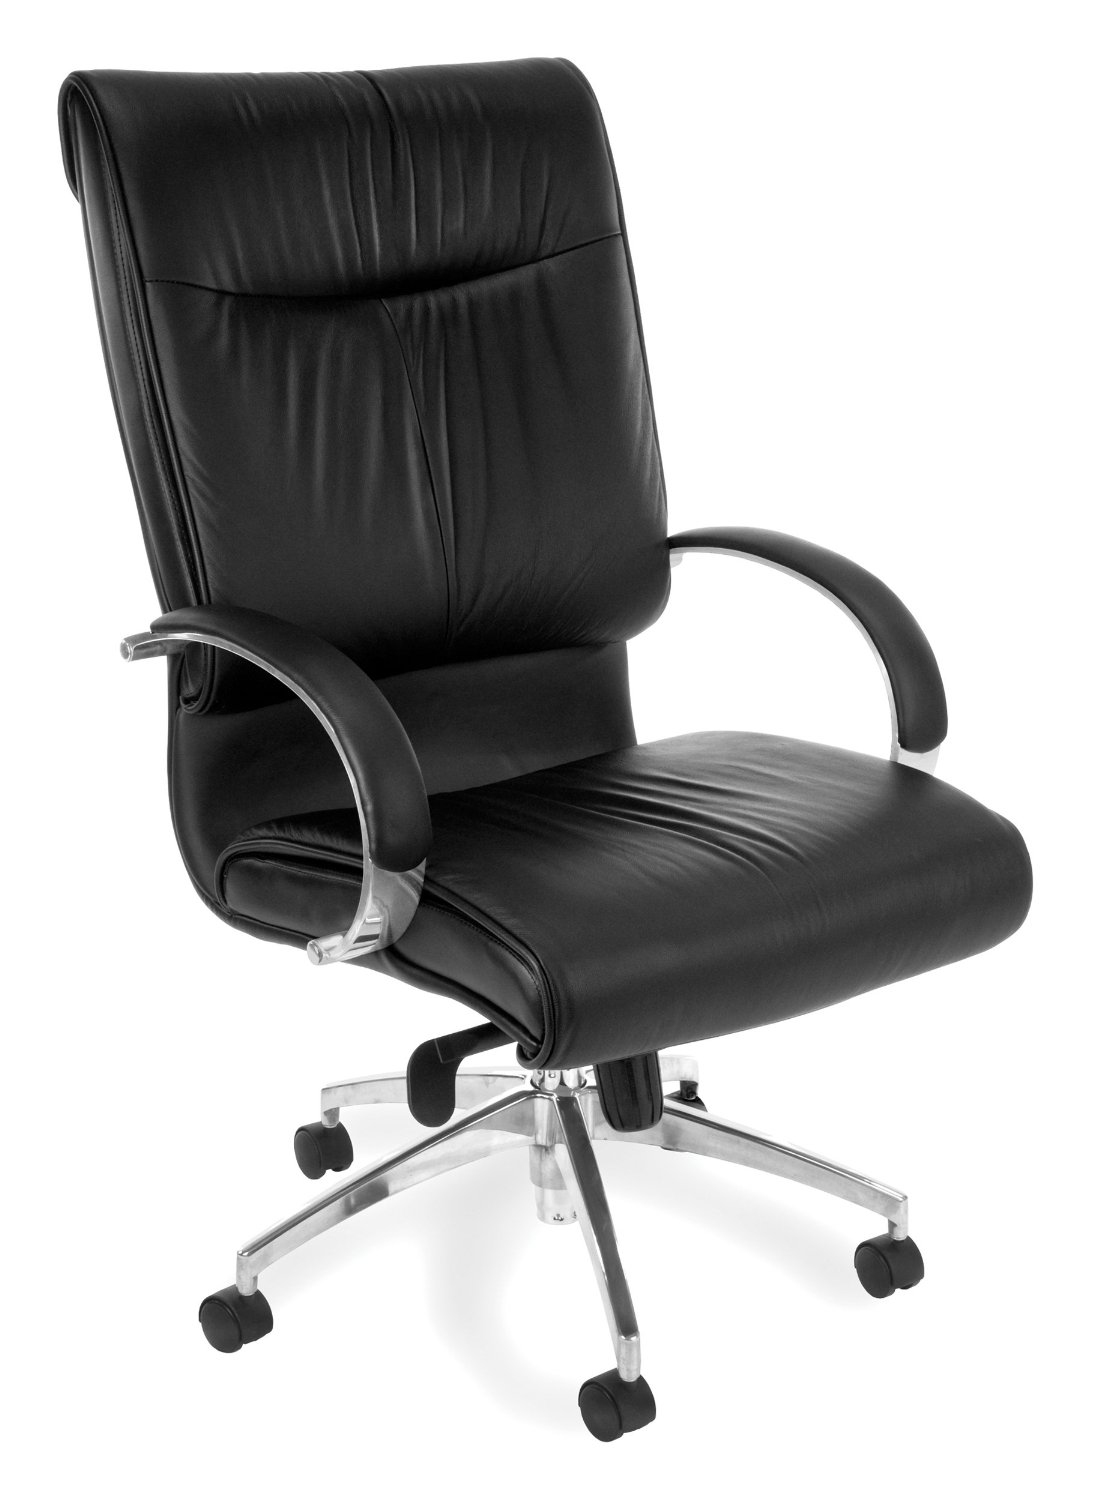 OFM Sharp Series Hi-Back Executive Leather Chair - High Back Ergonomic Office Chair (510-L)